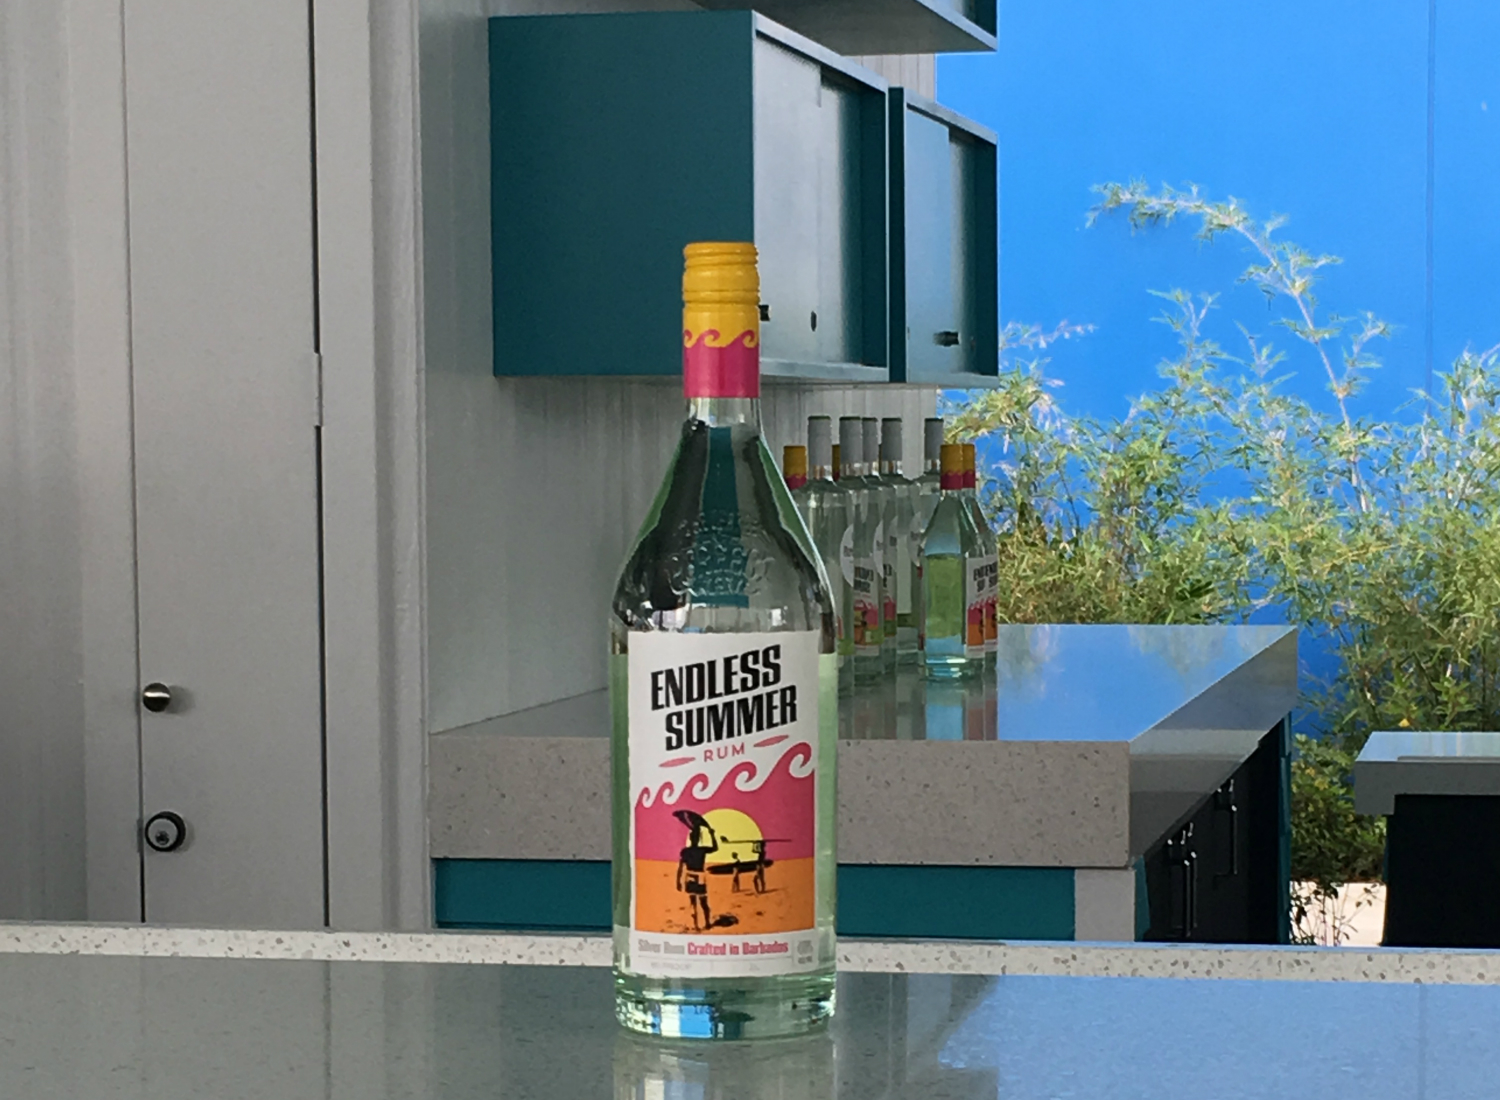 Surfside Inn & Suites Endless Summer Rum was crafted in partnership with a local distillery.